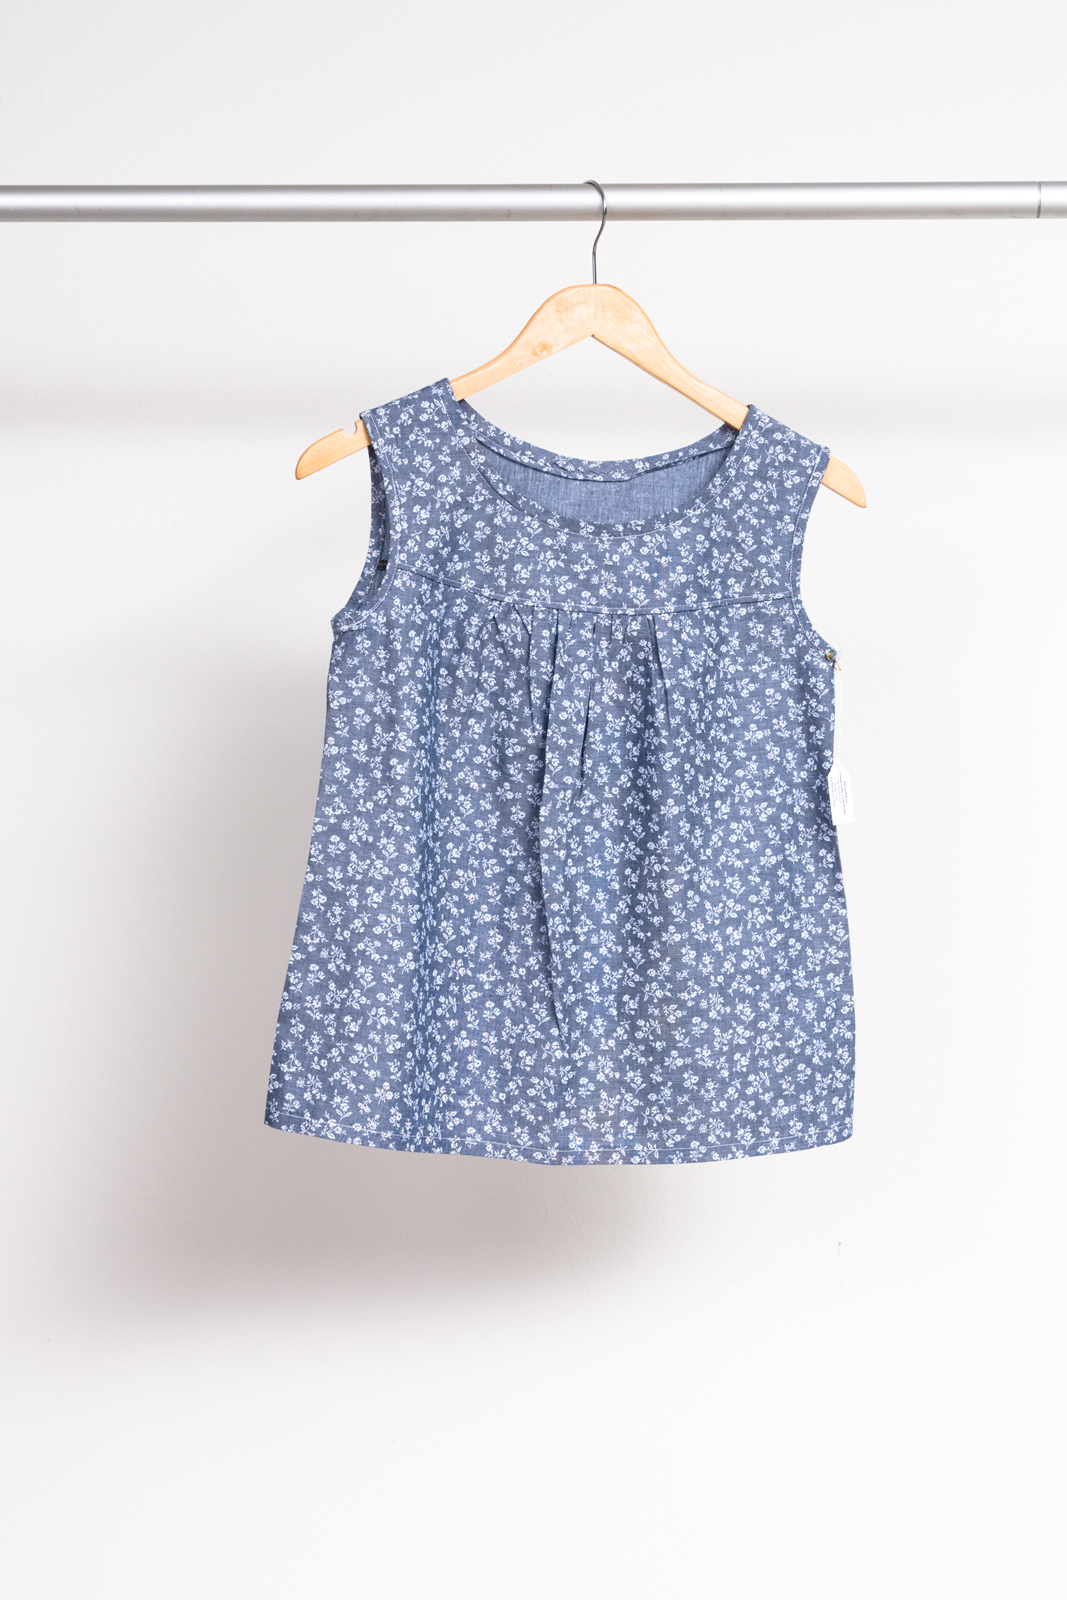 RUBY TOP BY MADE BY RAE ,  SEVENBERRY: CLASSIQUES CHAMBRAY